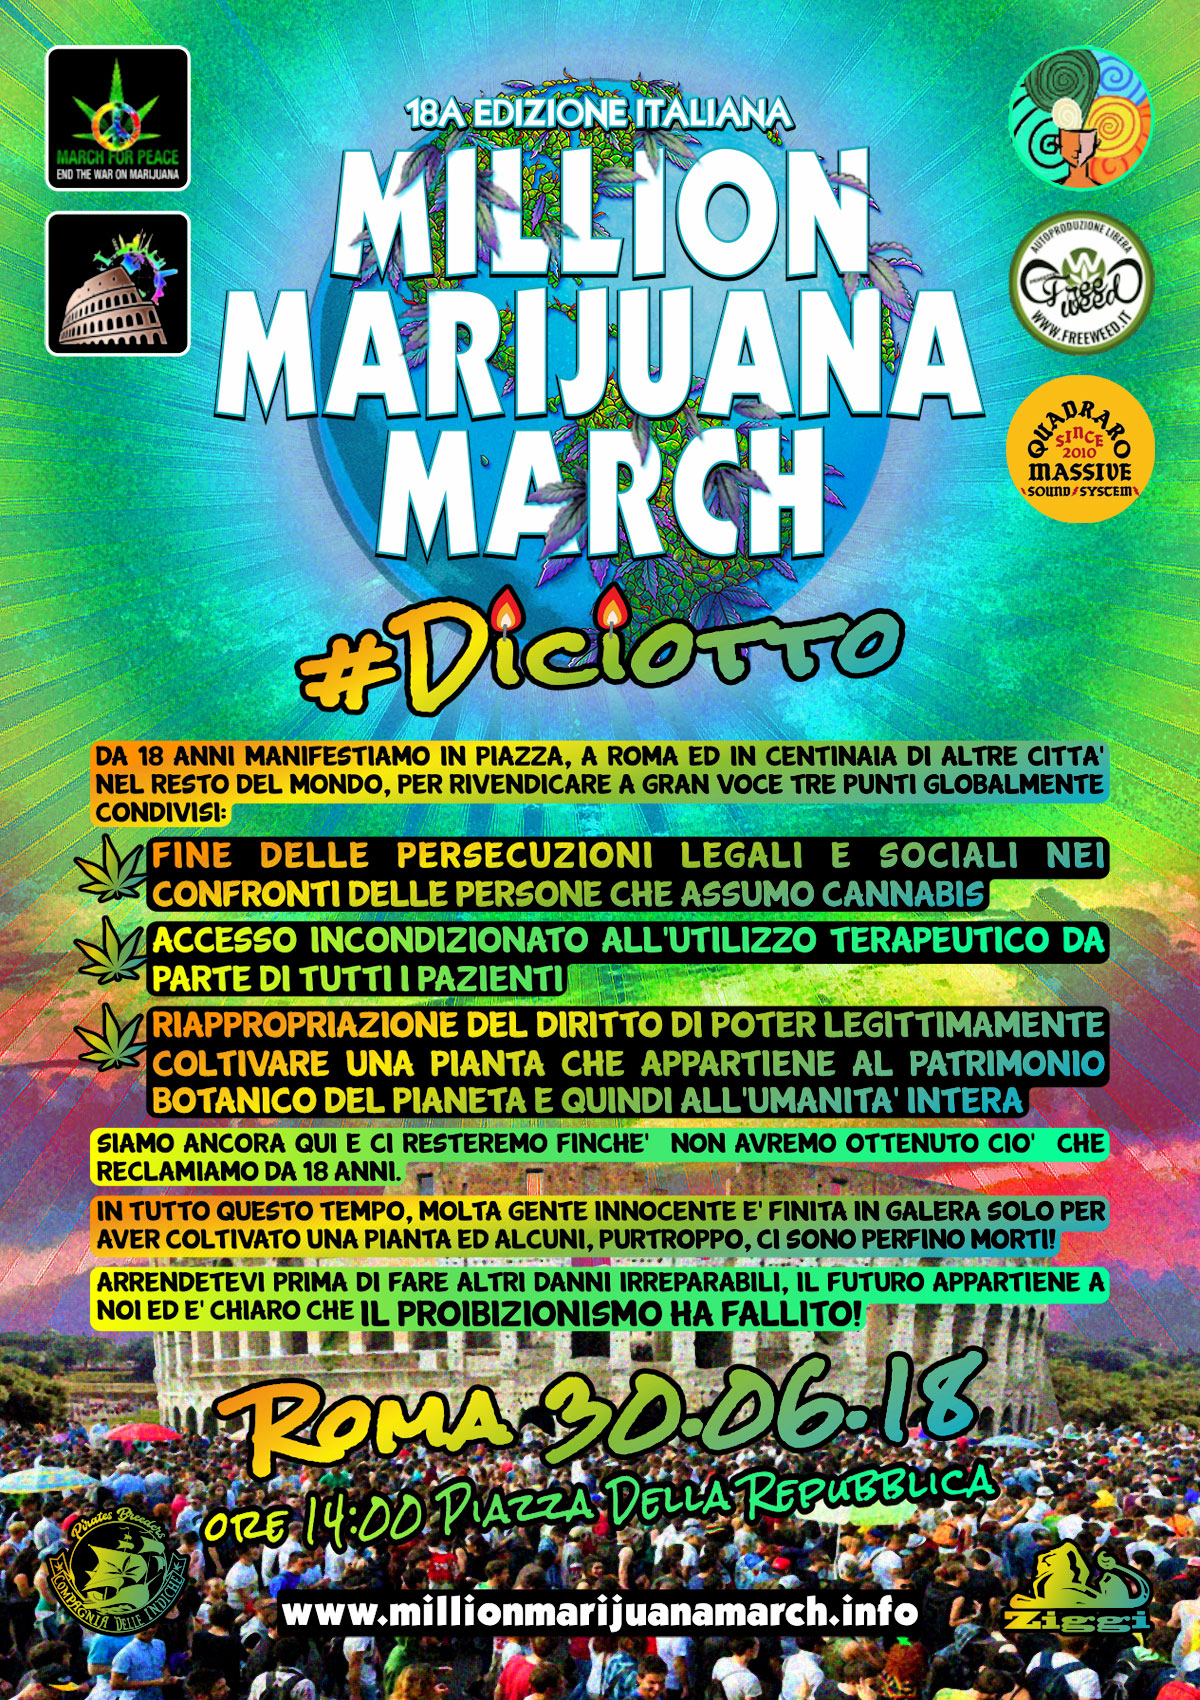 18a Edizione Million Marijuana March Italia - Sab 30 Giugno 2018 - ROMA